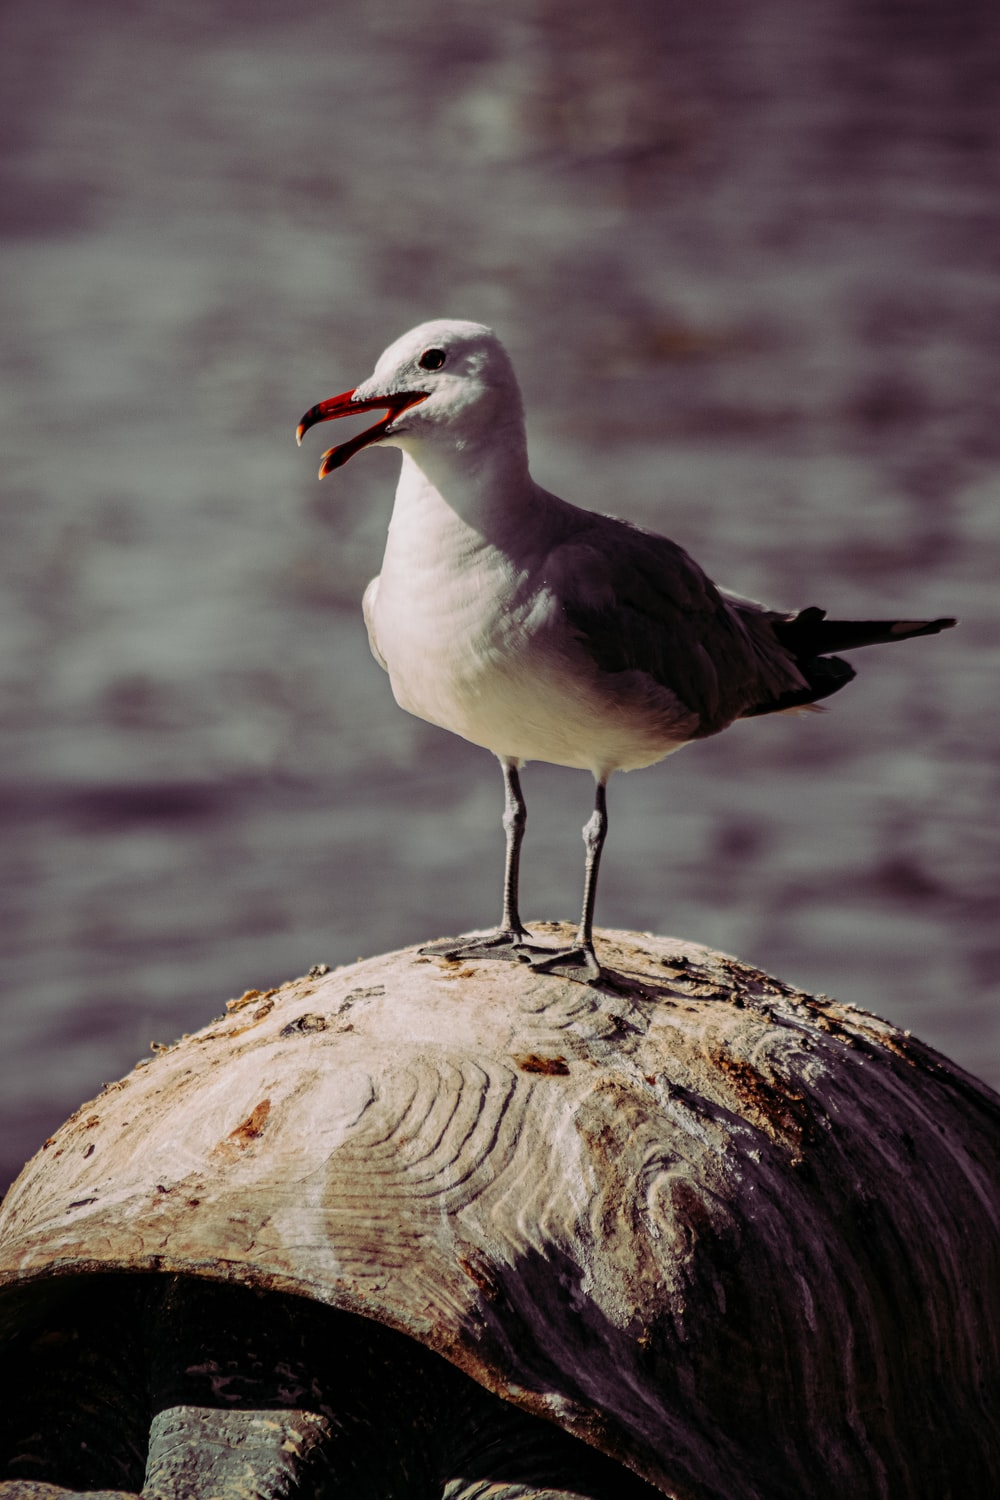 white and gray bird on brown rock